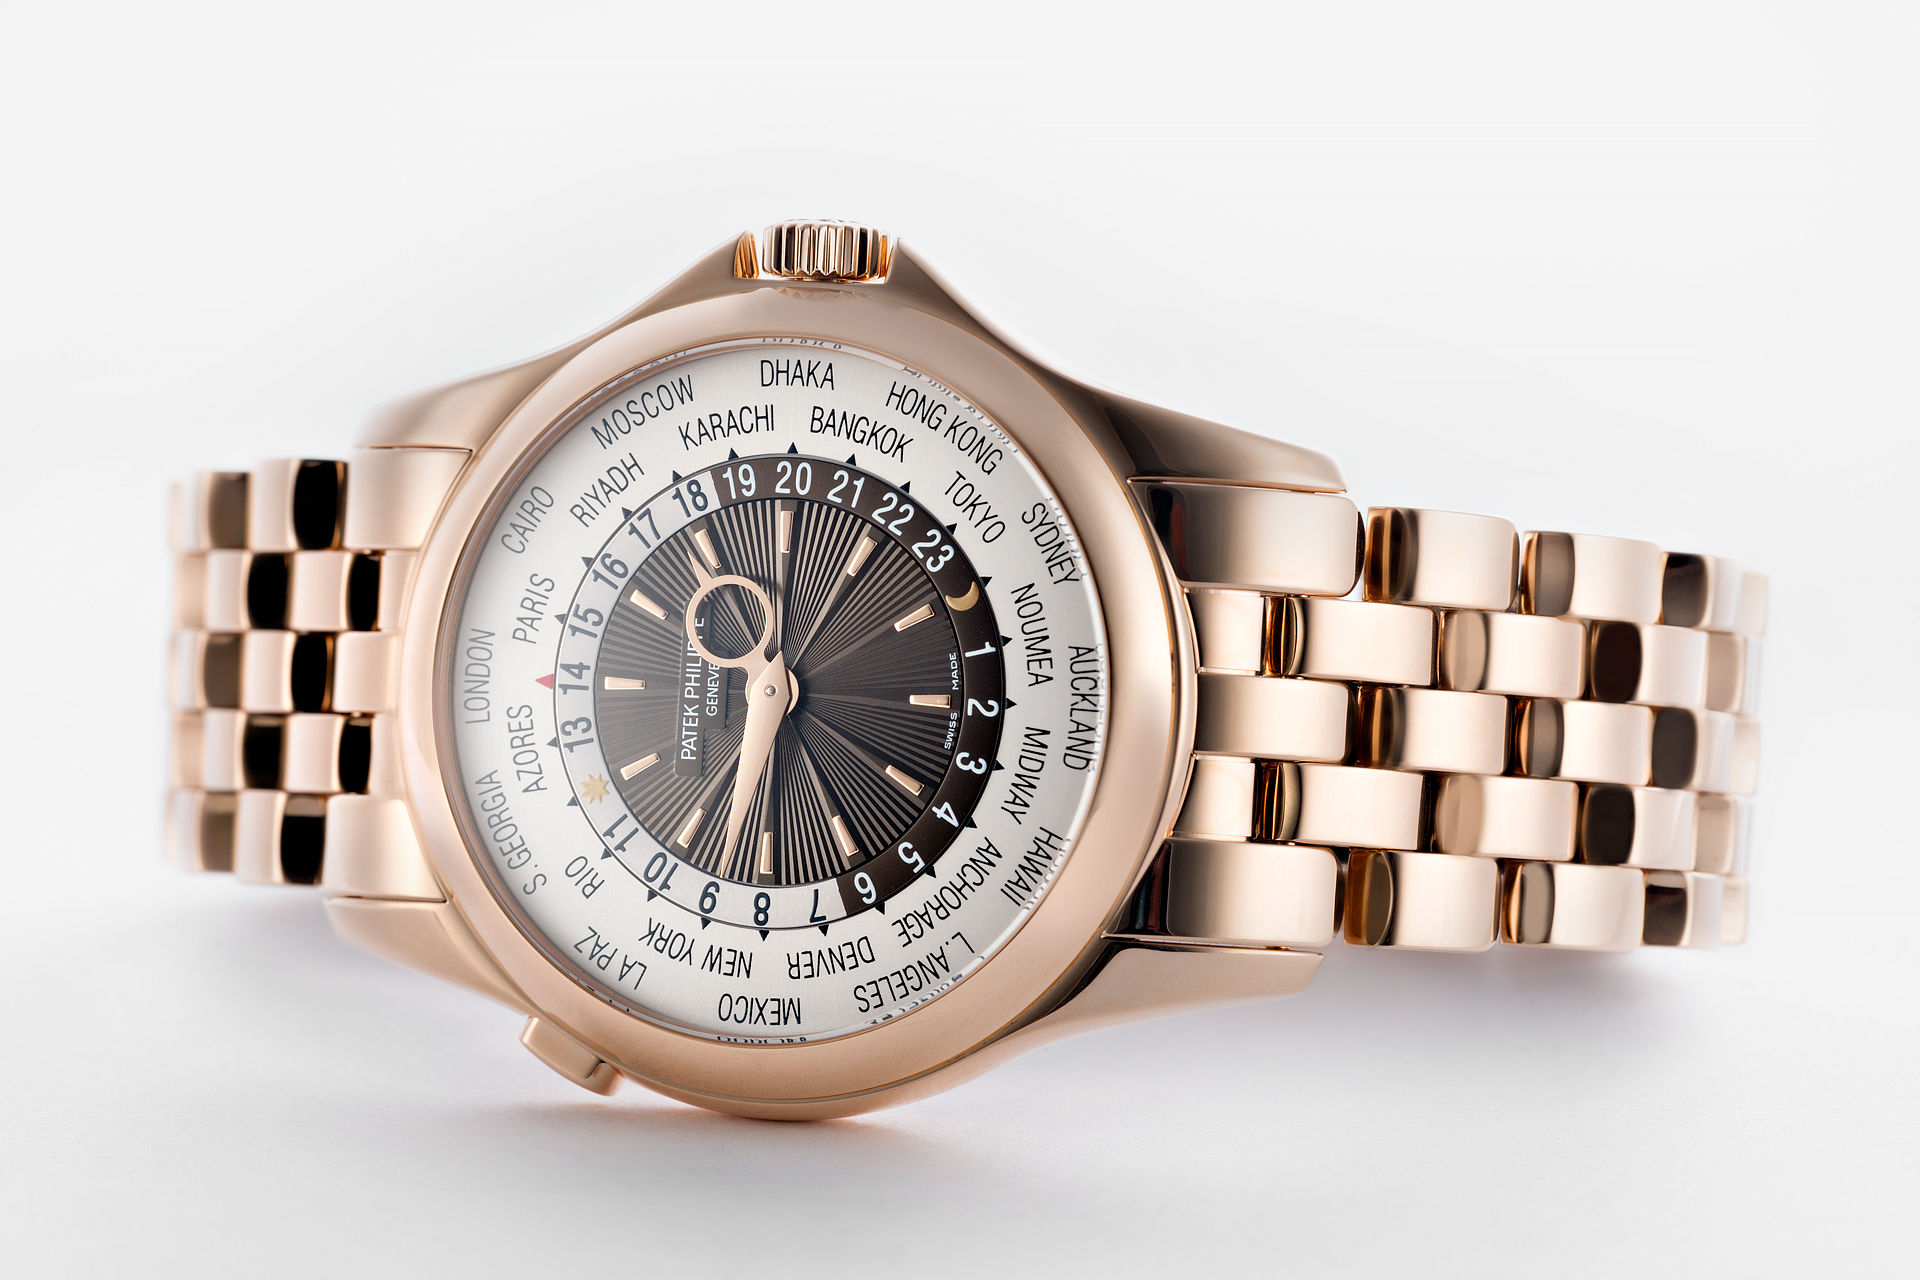 ref 5130R | 'Full Set' Immaculate | Patek Philippe World Time